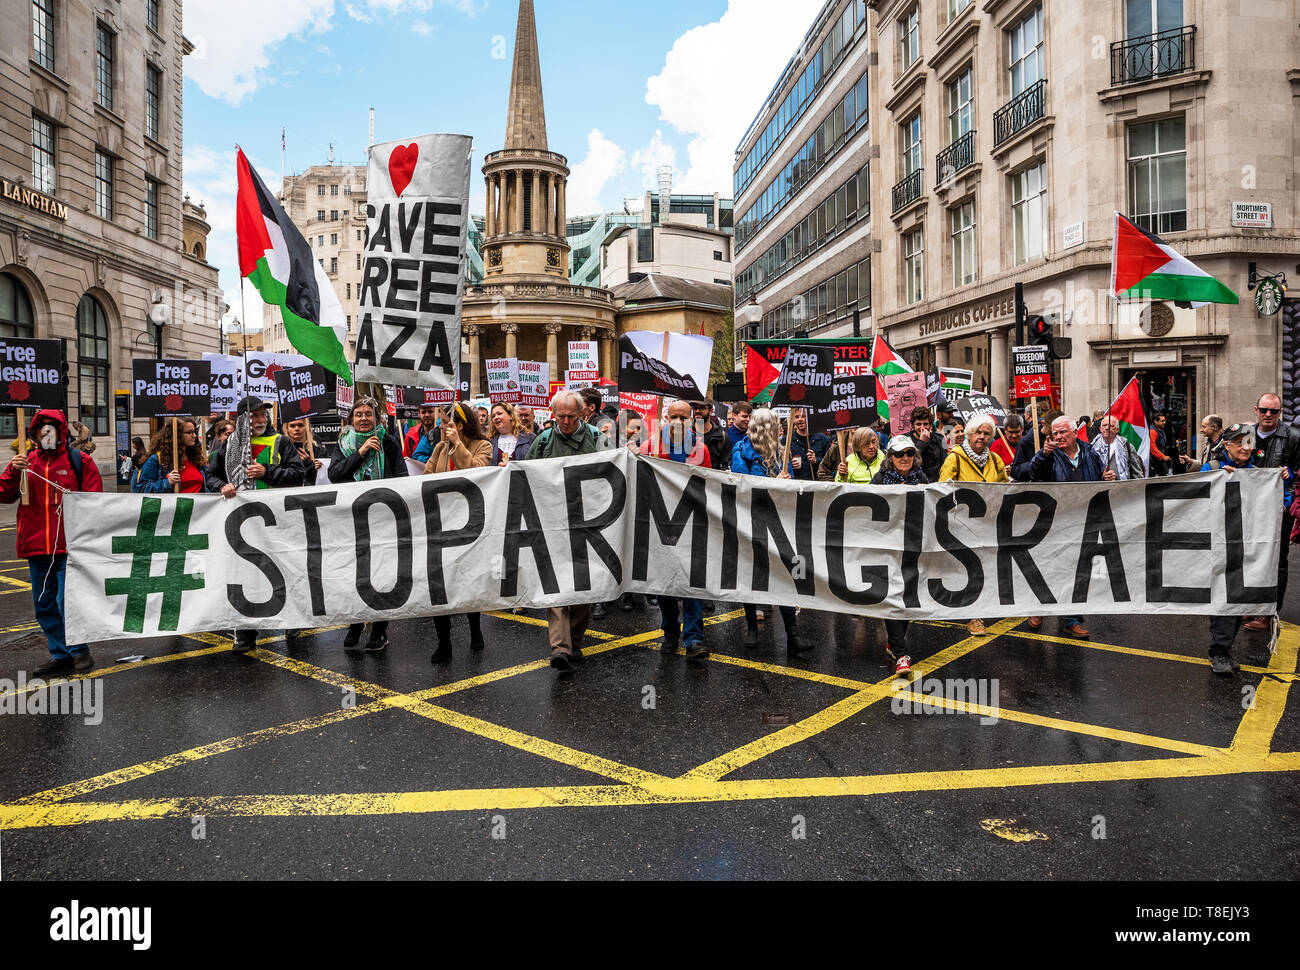 London, UK. May 11th 2019. National Demonstration for Palestine. Thousands of activists marched from Portland Place to Whitehall. Organised by the Palestine Solidarity Campaign, Stop the War Coalition, Palestinian Forum in Britain, Friends of Al- Aqsa & Muslim Association of Britain. Credit: Stephen Bell/Alamy Stock Photo Stock Photo